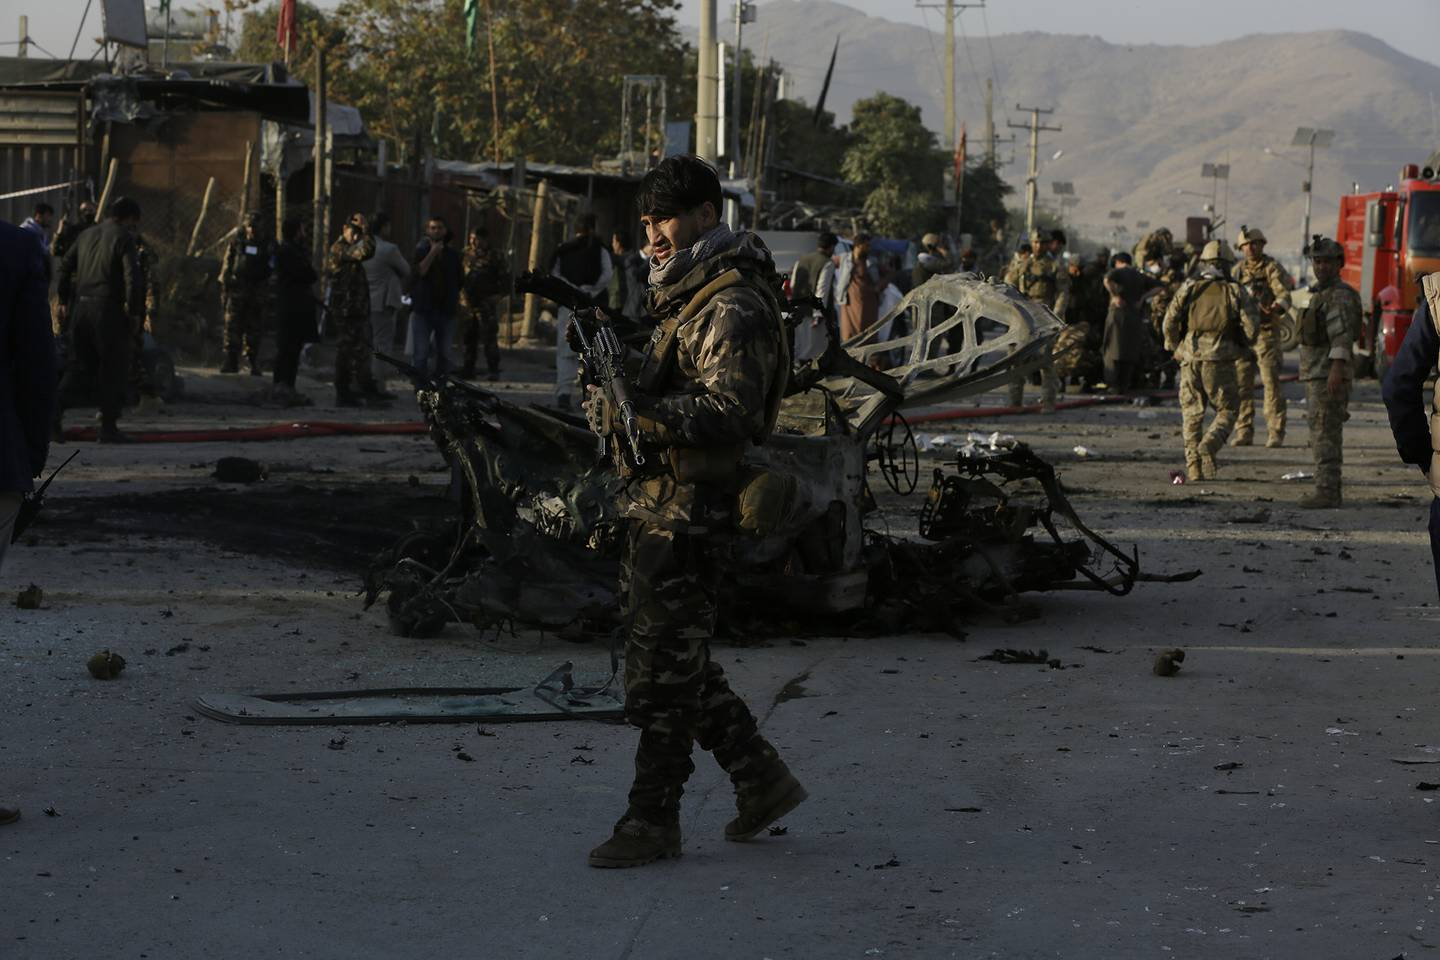 Afghan security personnel stand guard after a car bomb explosion in Kabul, Afghanistan,Tuesday, Oct. 27, 2020.